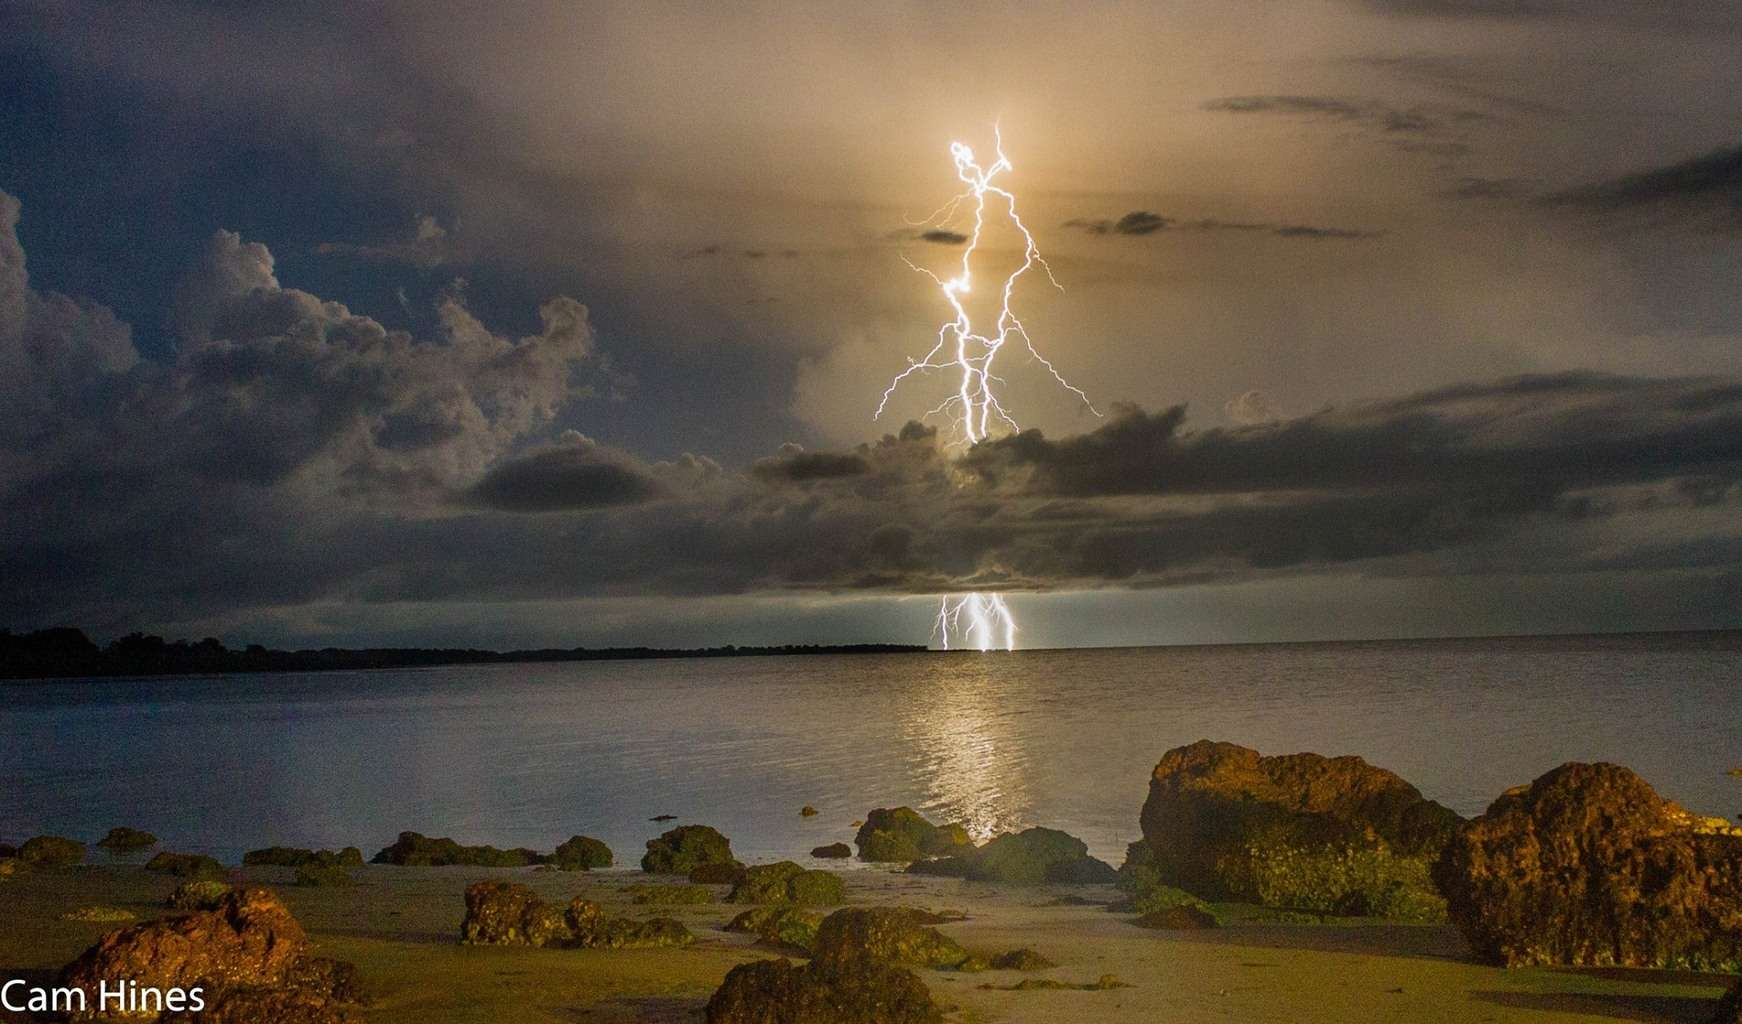 December 21 last year in Weipa, far north QLD Australia. One of the almost nightly light shows just offshore during the southern hemisphere monsoon season.